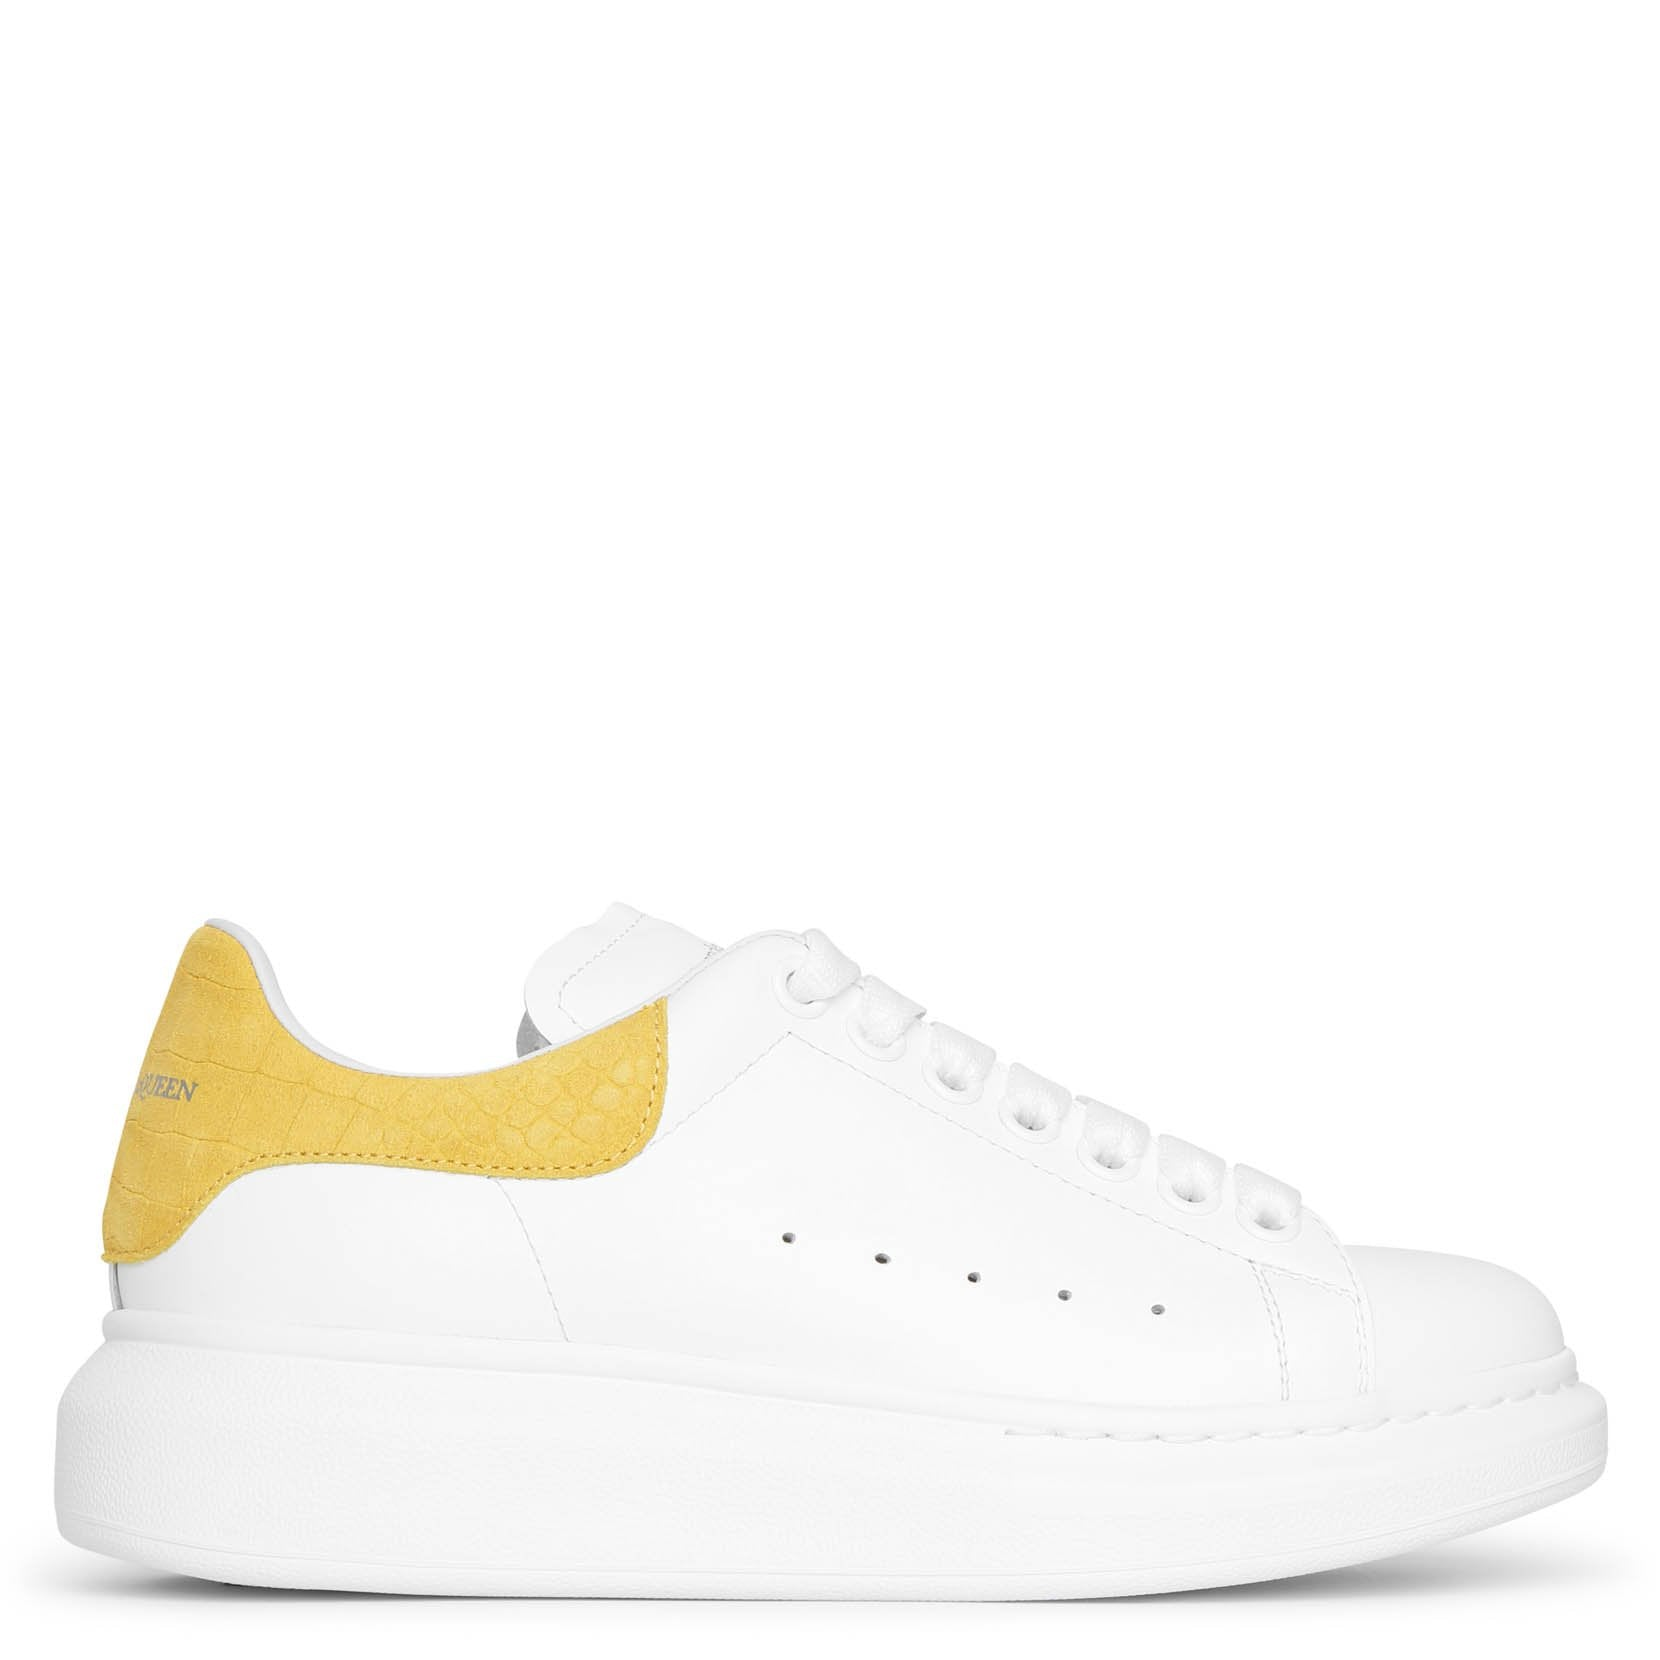 Alexander Mcqueen White and yellow printed suede classic sneakers